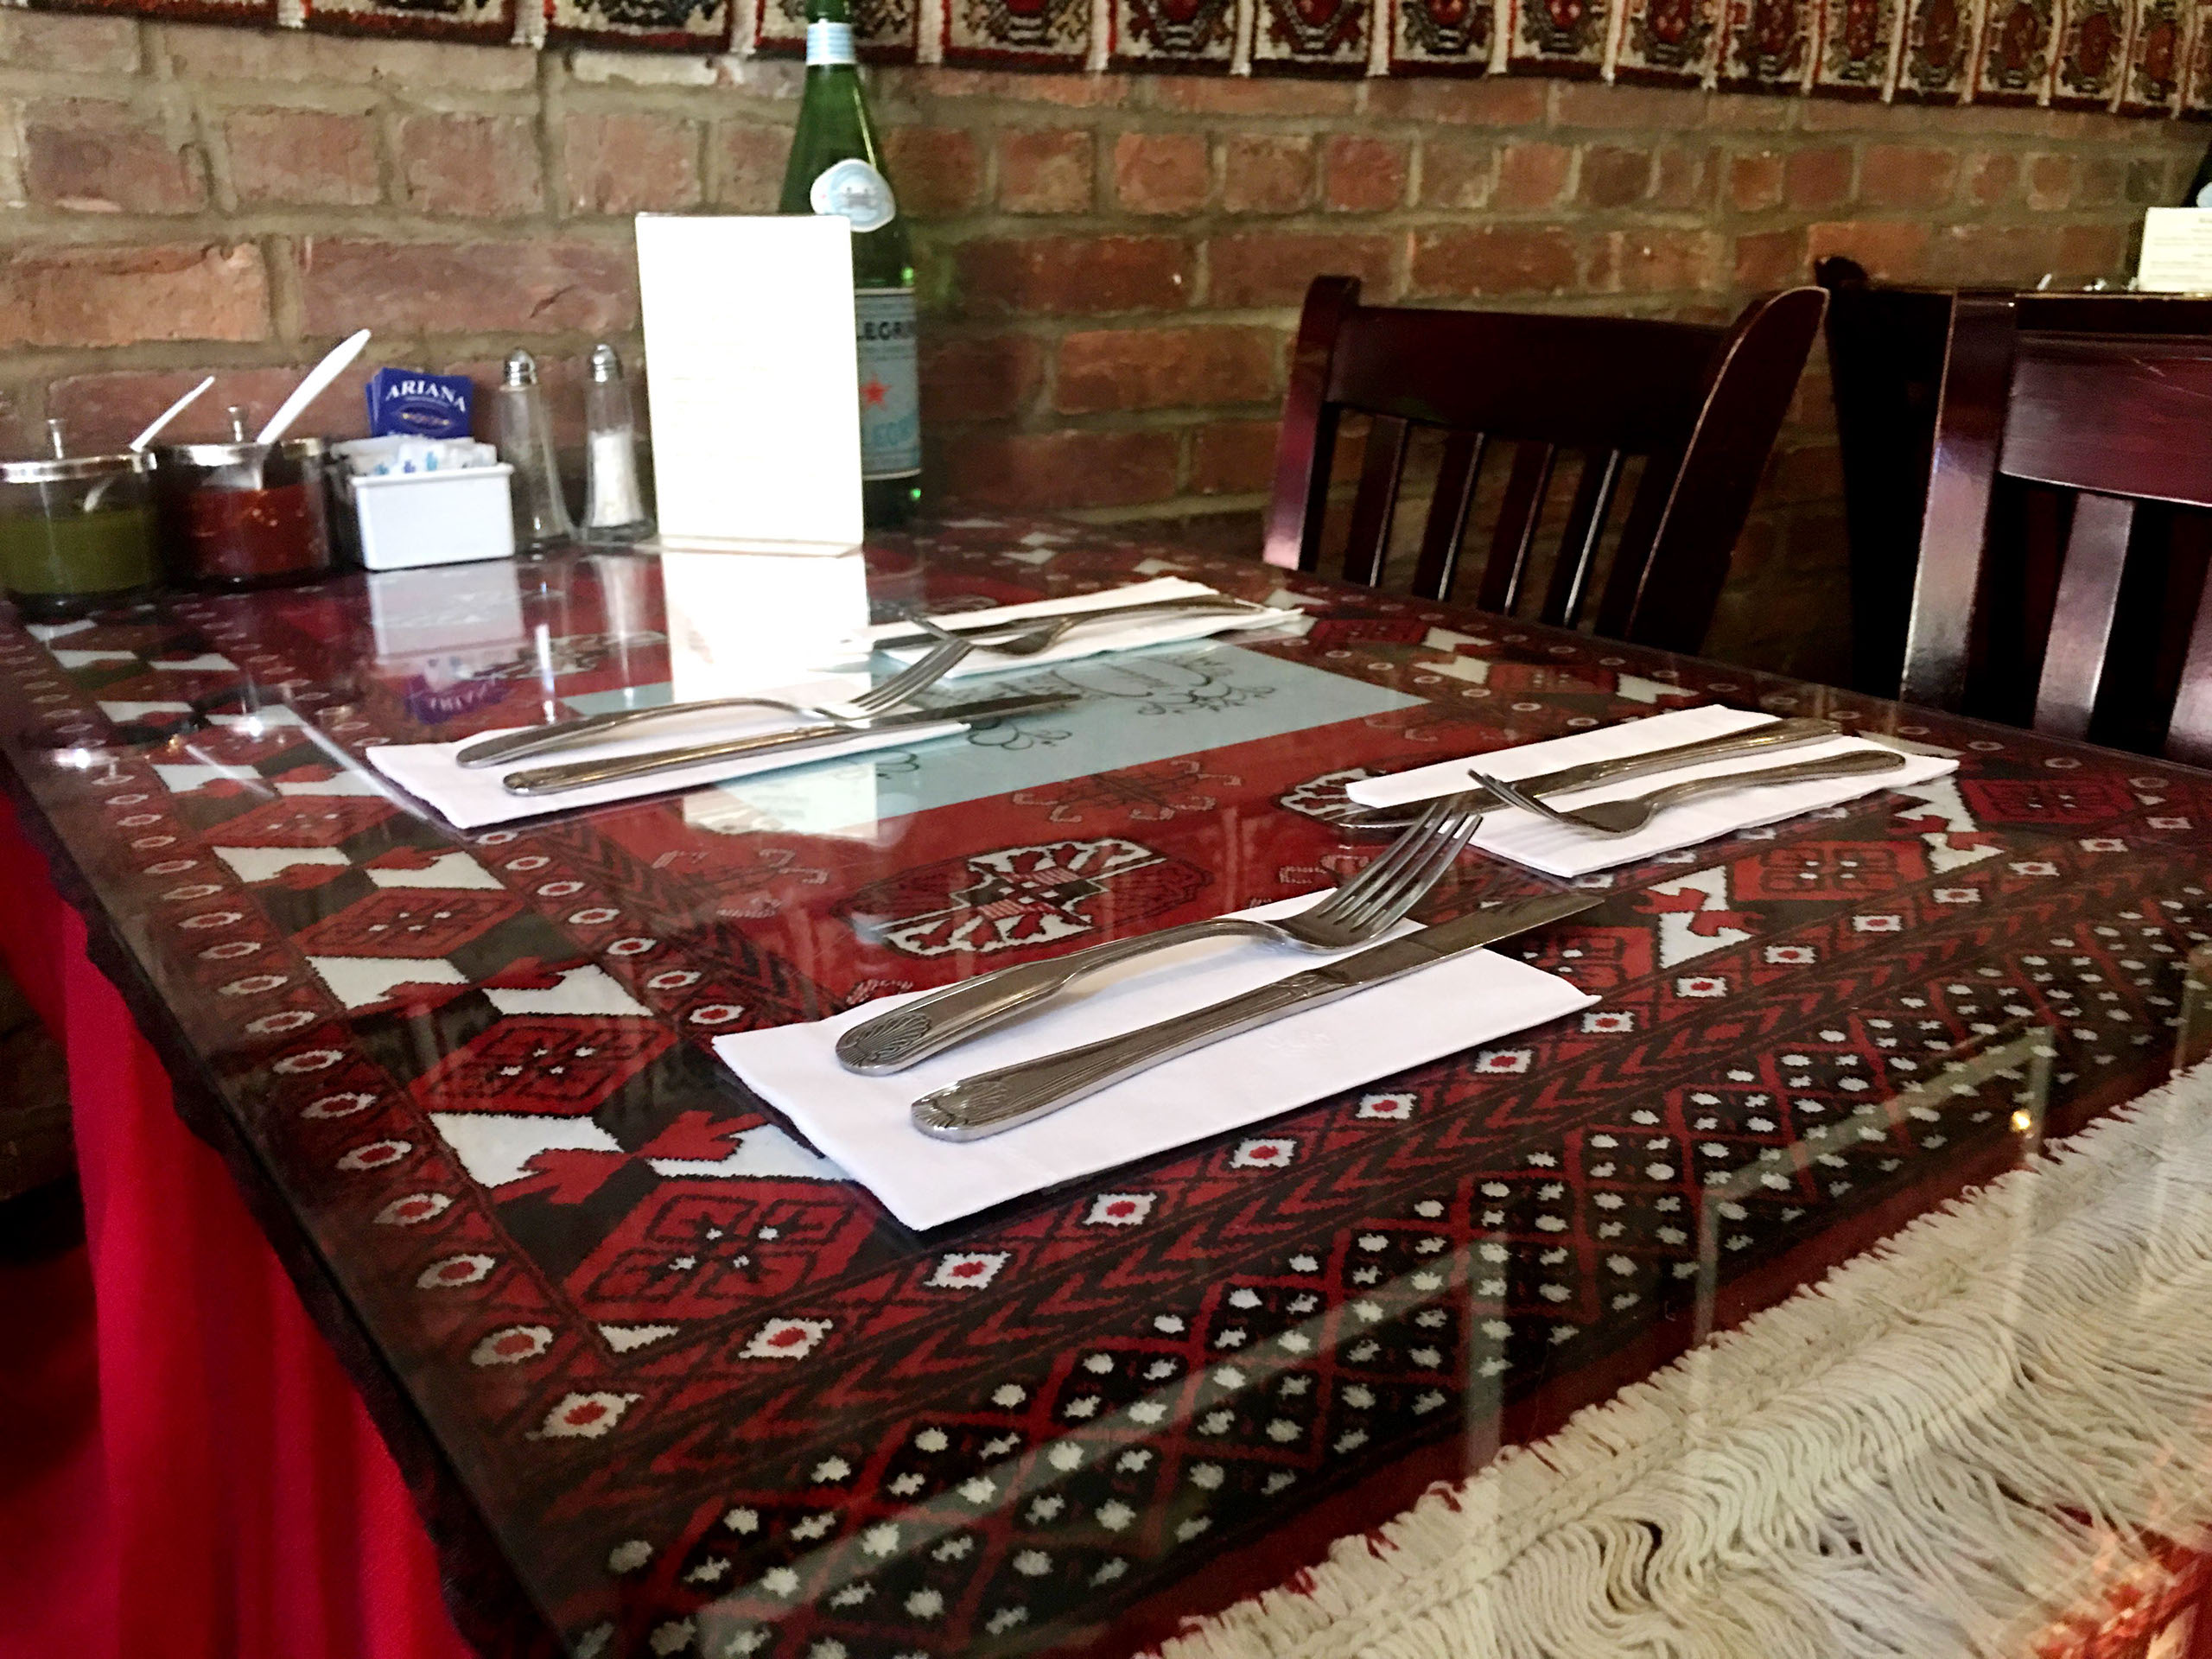 Welcome to ariana afghan kebob new york city for Afghan kebob cuisine